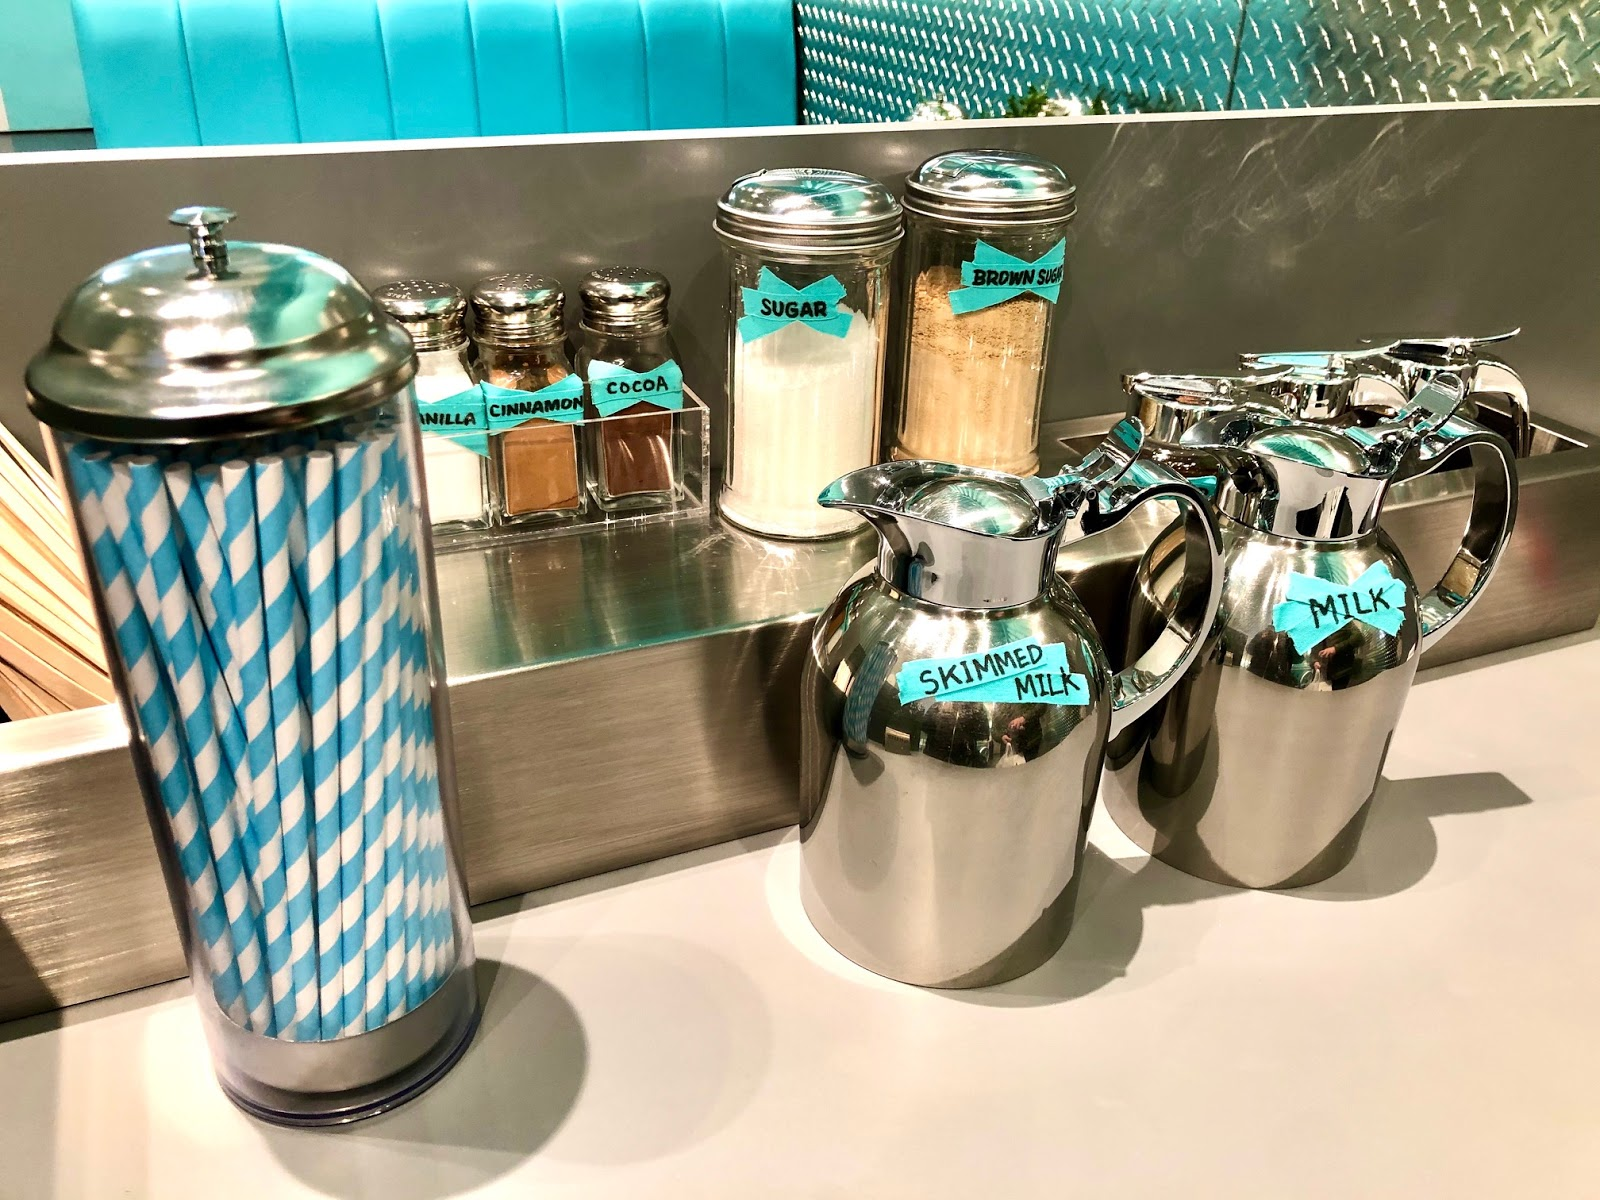 Tiffany's Cafe Tokyo Japan Review